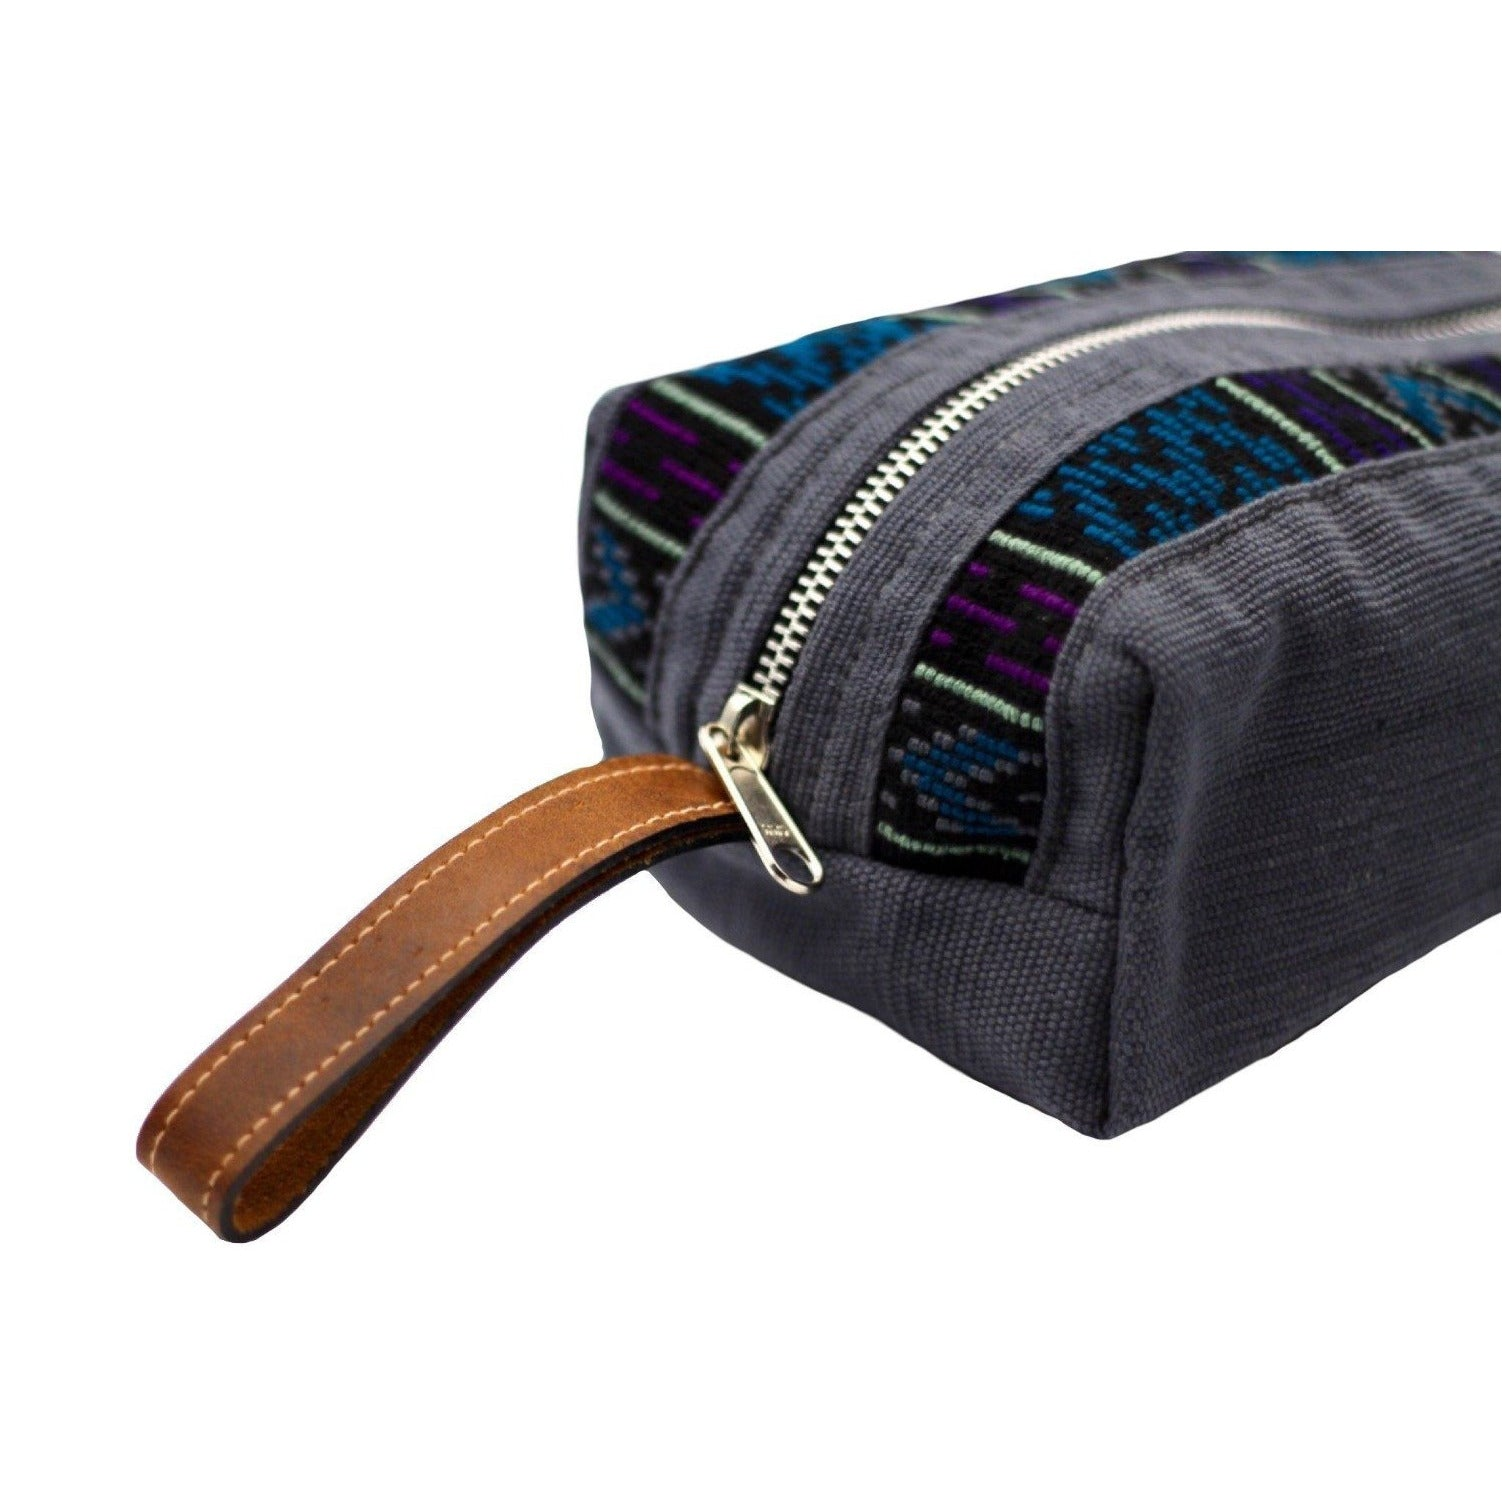 uq k'iche travel pouch zoom zipper